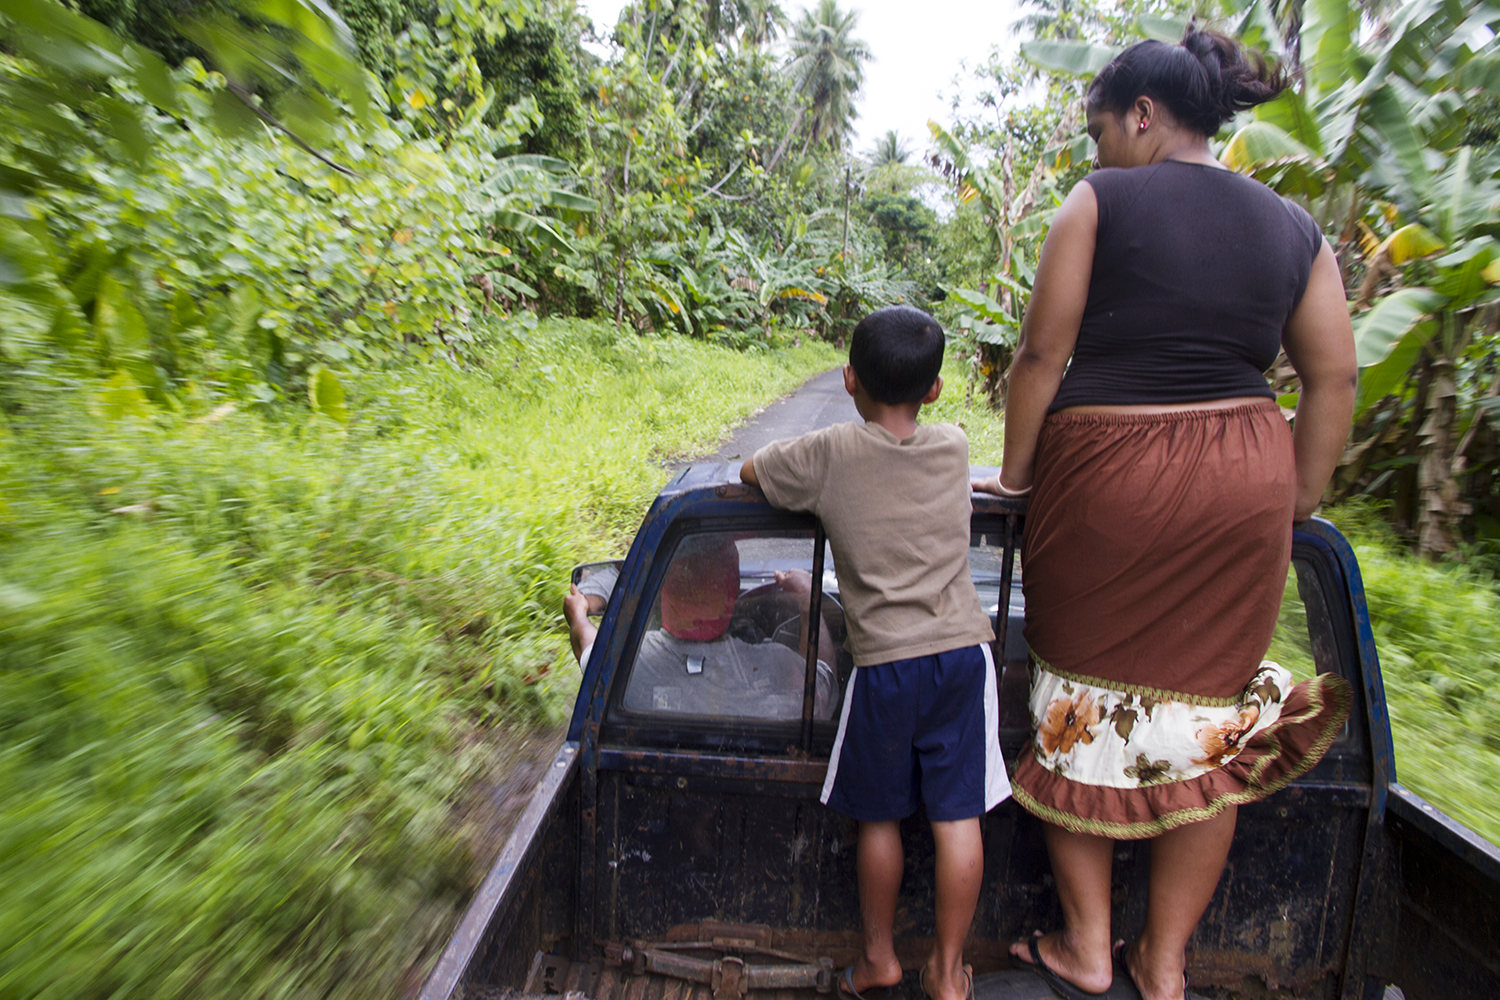 <p>Siblings ride on a flat bed truck in Nett.</p>